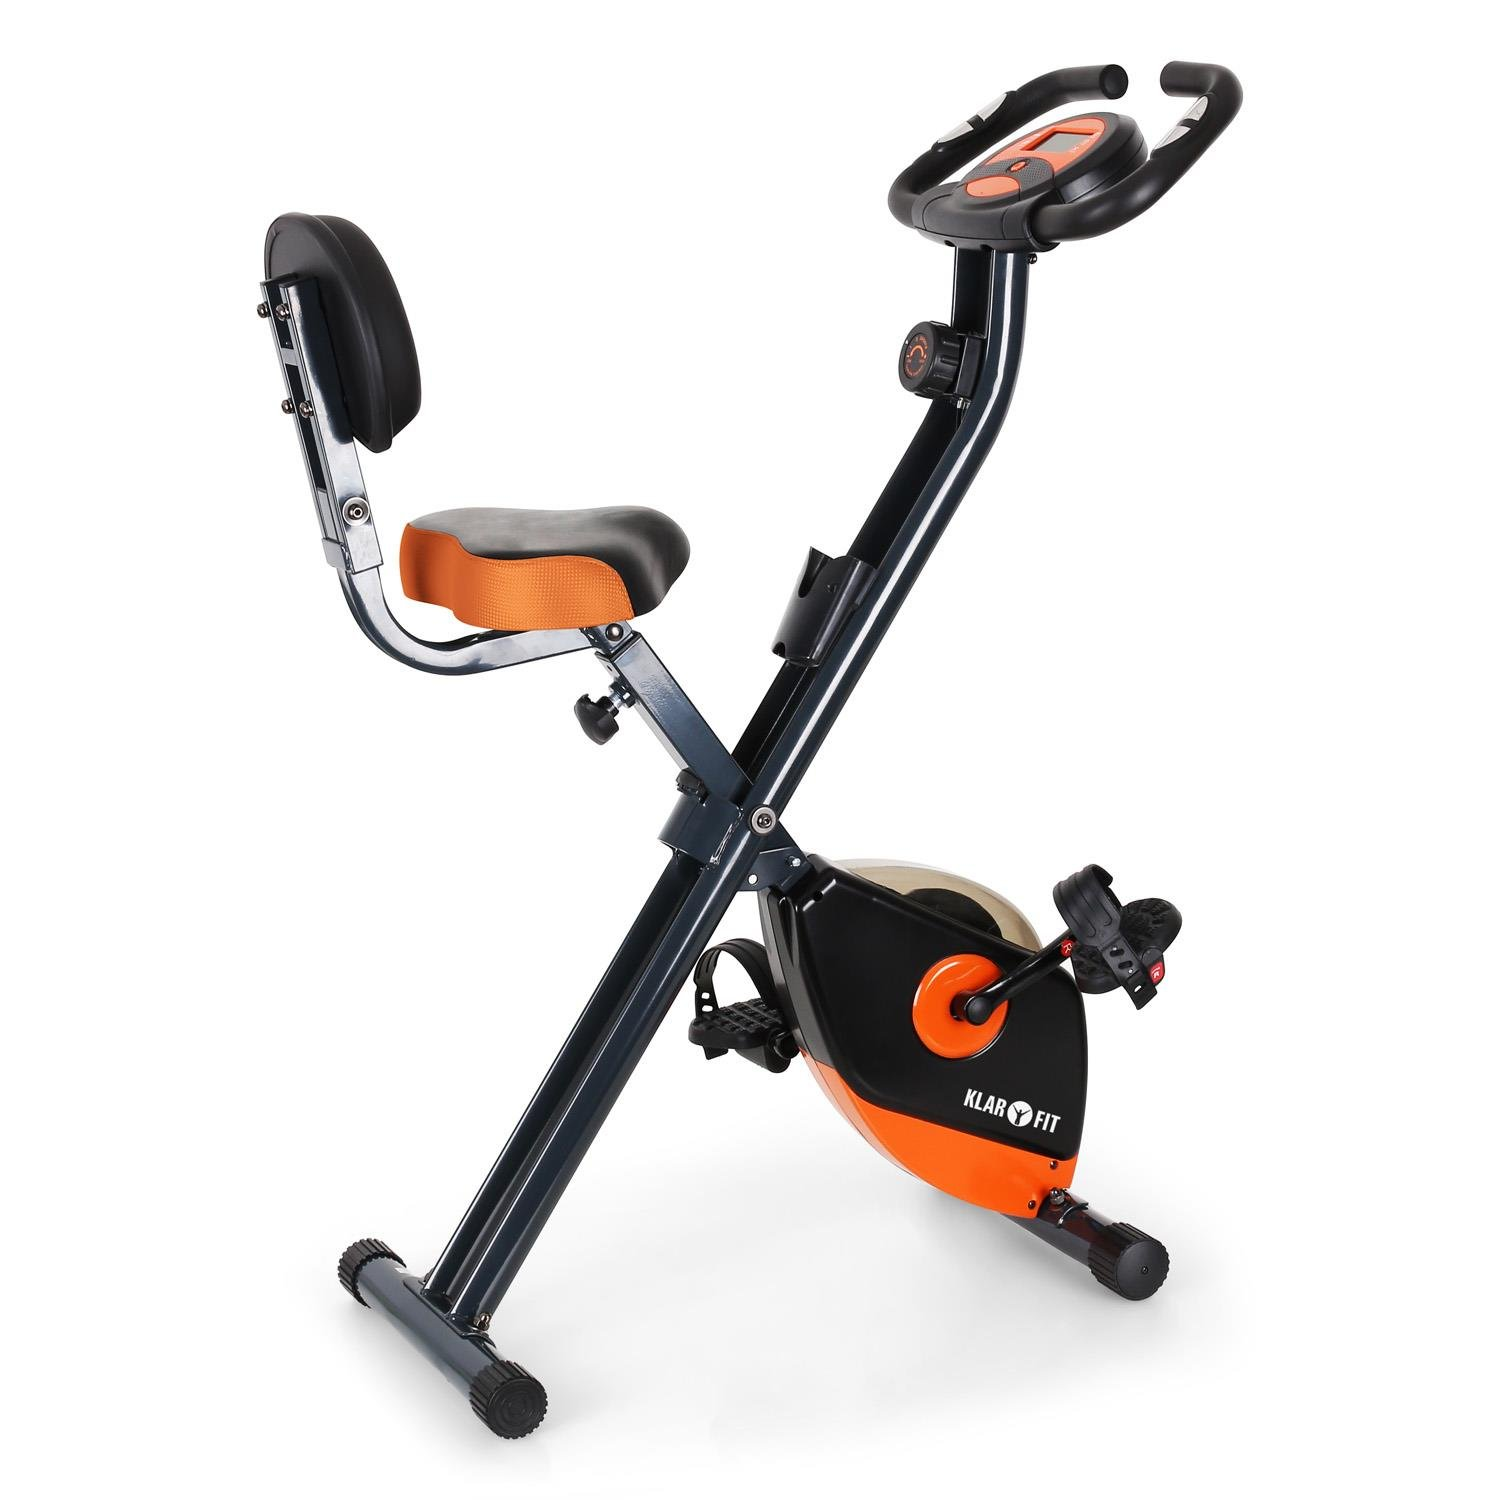 Klarfit X Bike 700 bicicleta estatica plegable